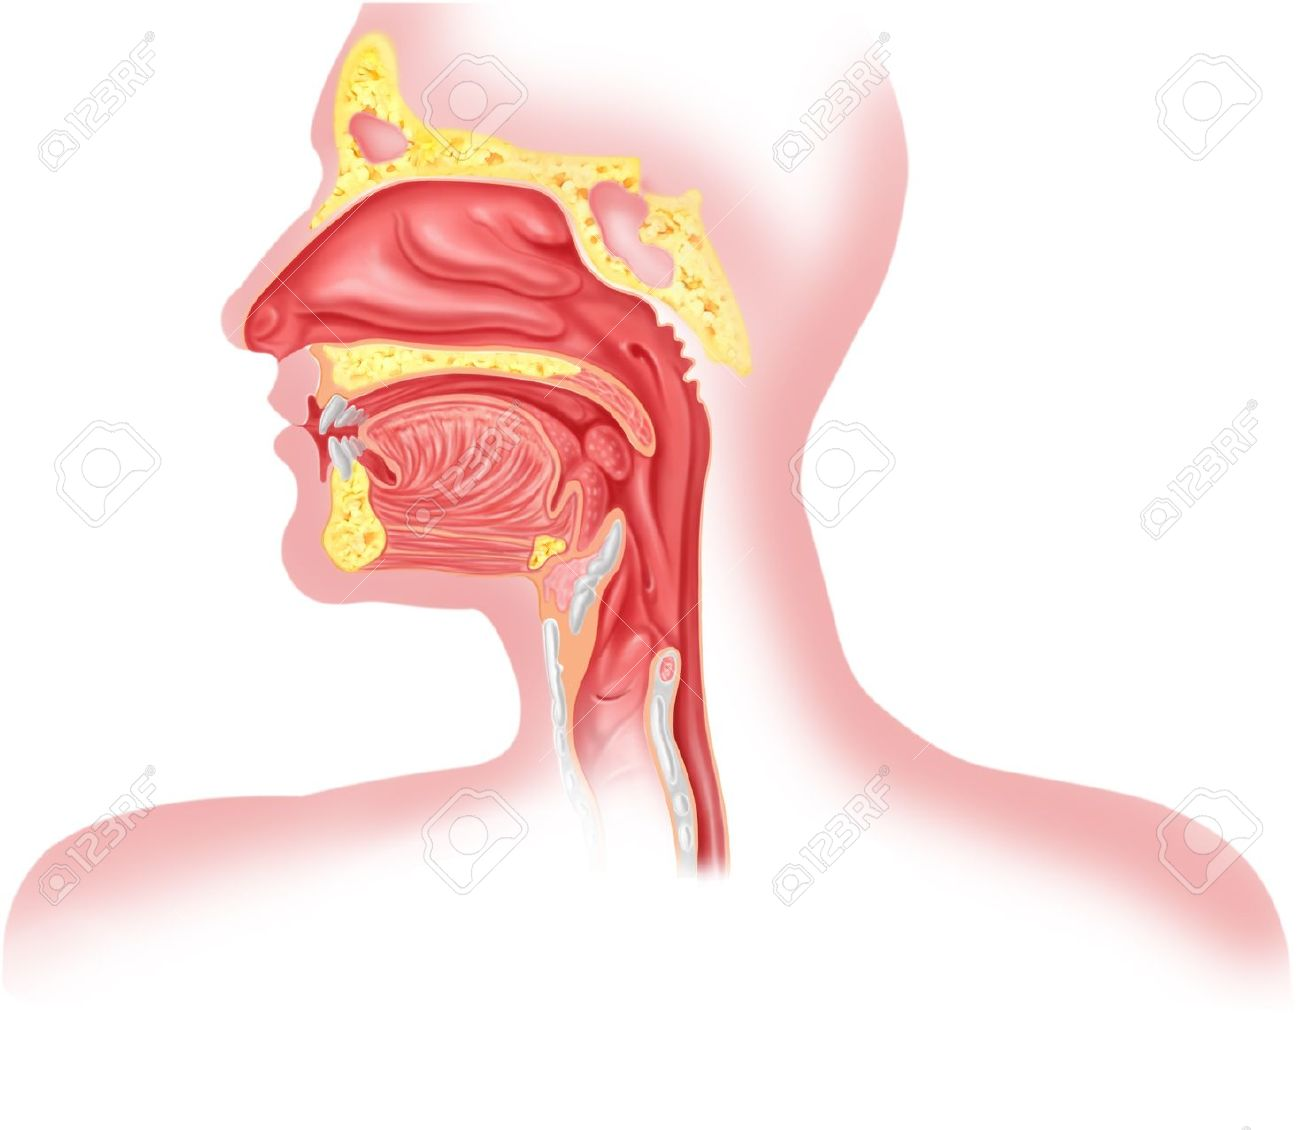 Human Respiratory System Cross Section, Head Part. Stock Photo.